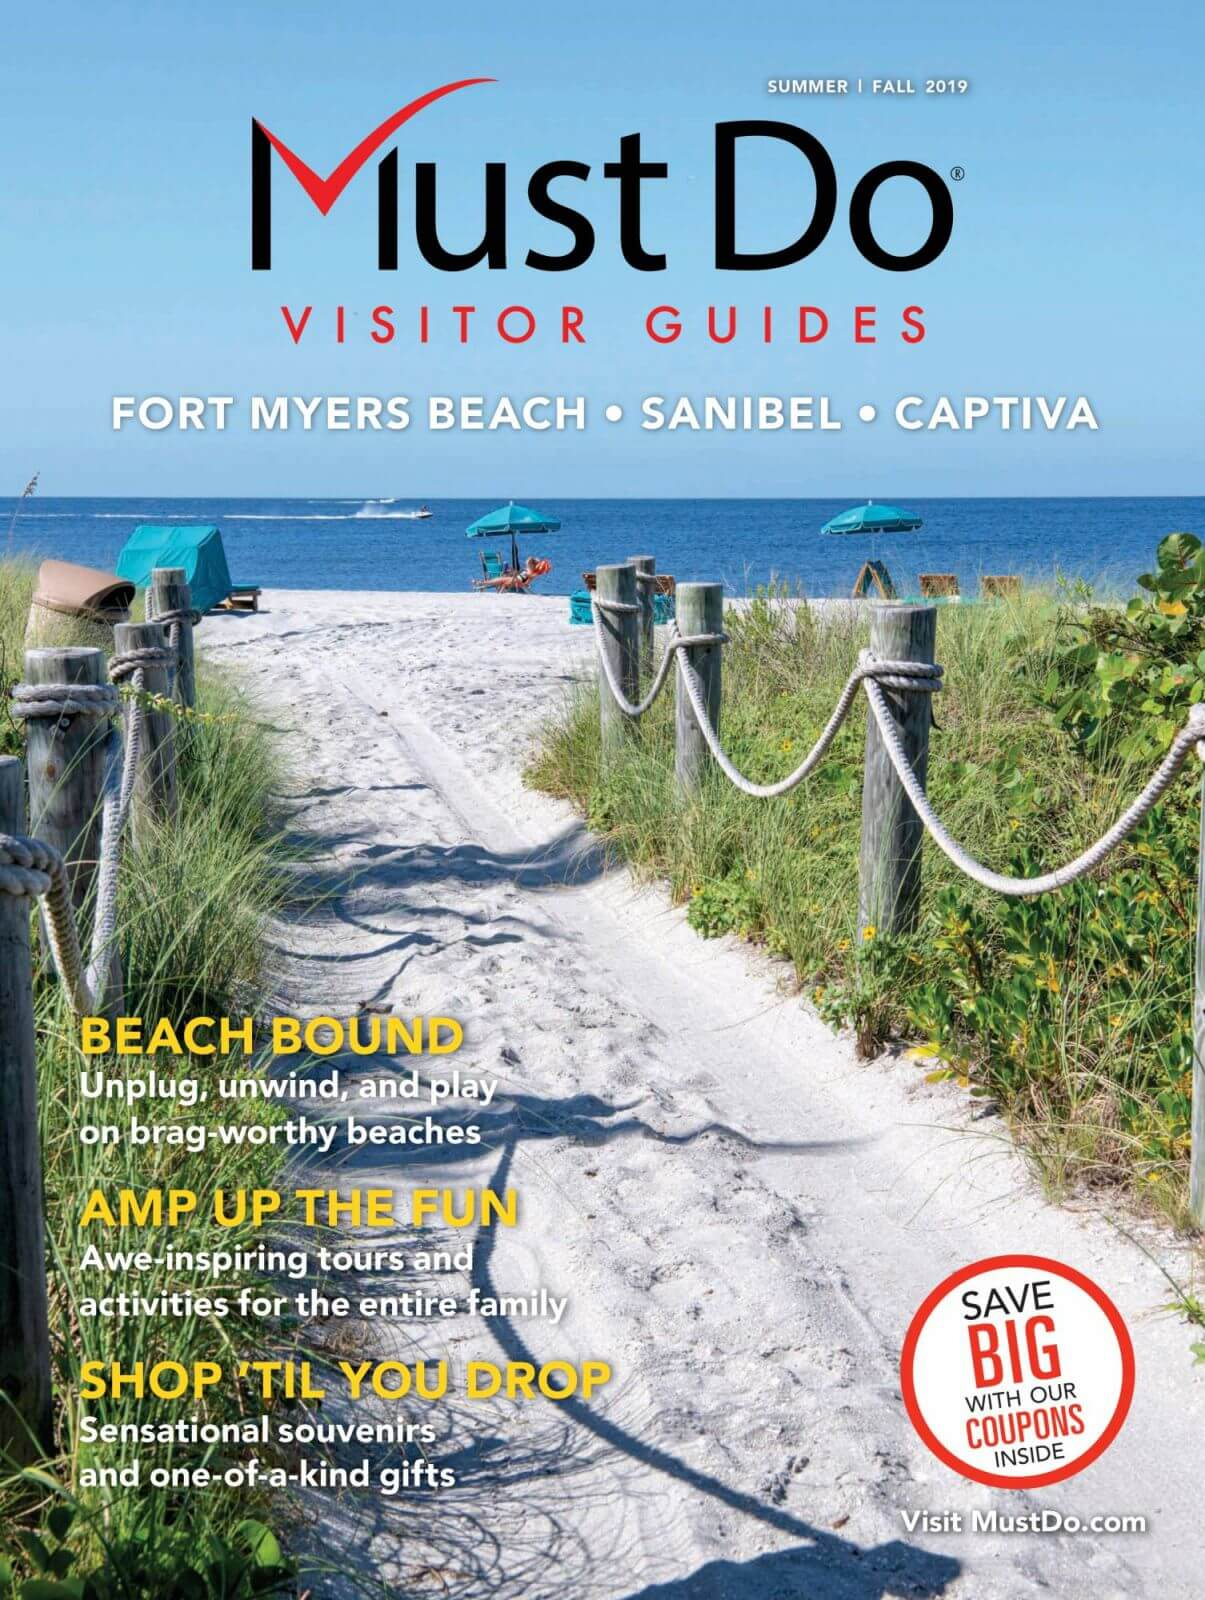 Fort Myers Beach, Sanibel and Captiva, Florida visitor information and things to do on vacation. Read the current issue of Must Do Visitor Guides online at MustDo.com.